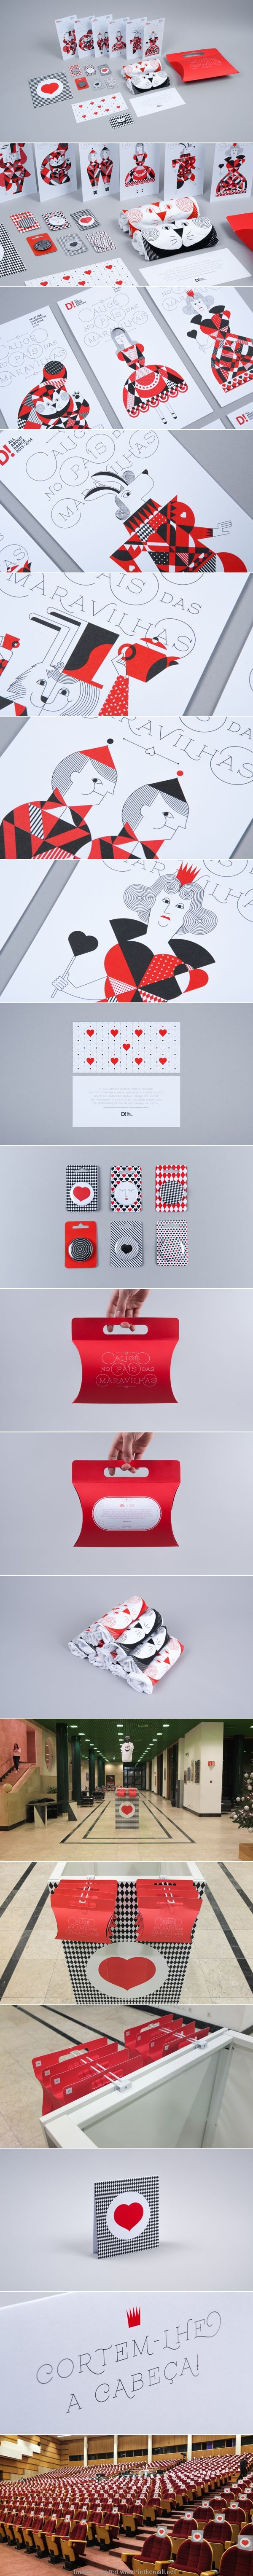 Alice in Wonderland all about dance #identity #packaging #branding PD - created via http://pinthemall.net